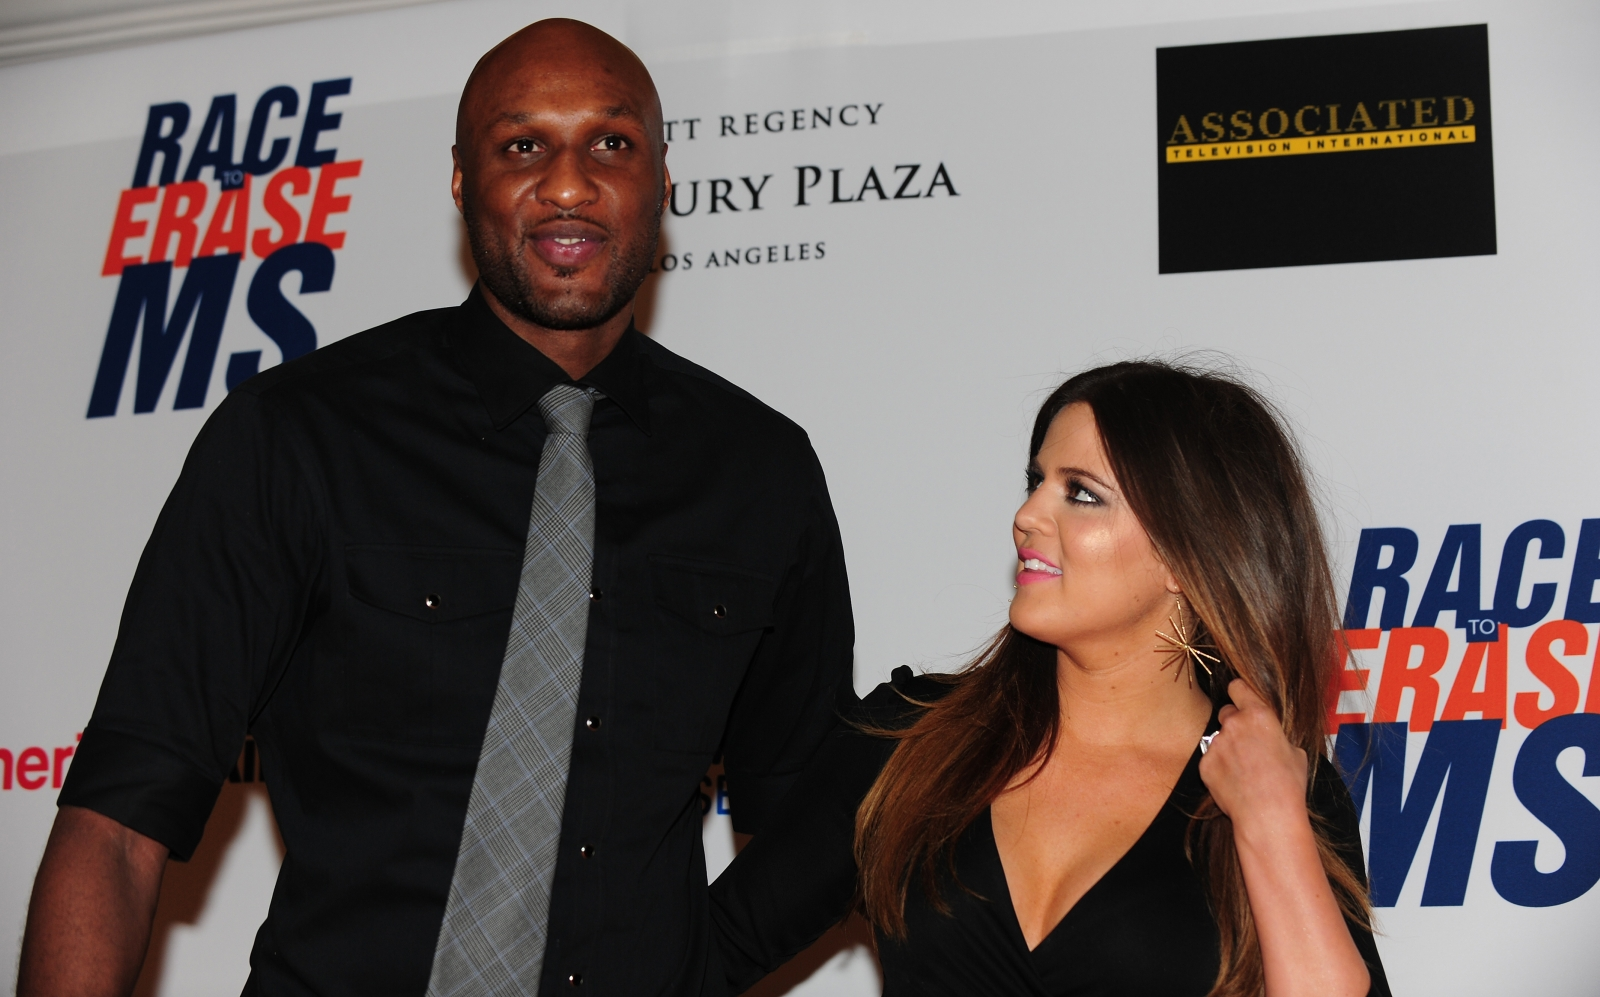 lamar odom dating khloe kardashian Khloé kardashian and lamar odom were married for 7 years they dated for 1 month after getting together in aug 2009 after a 9 days engagement they married on 27th sep 2009 7 years later they separated in aug 2013 and divorced on 17th dec 2016.